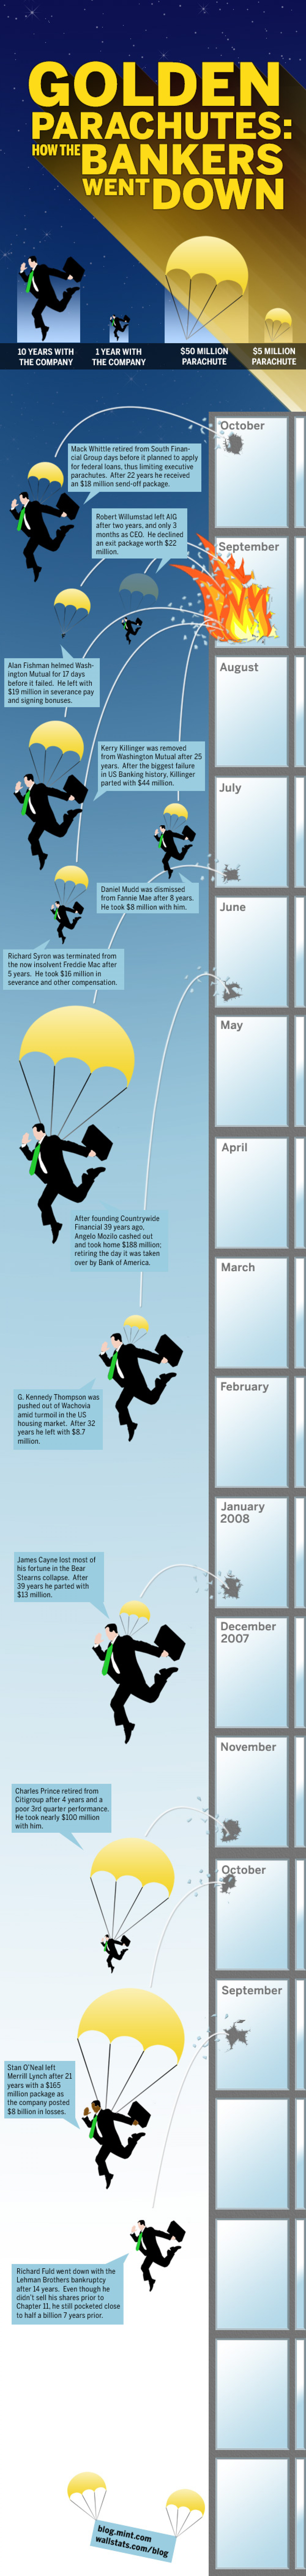 Golden Parachutes: How the Bankers Went Down Infographic